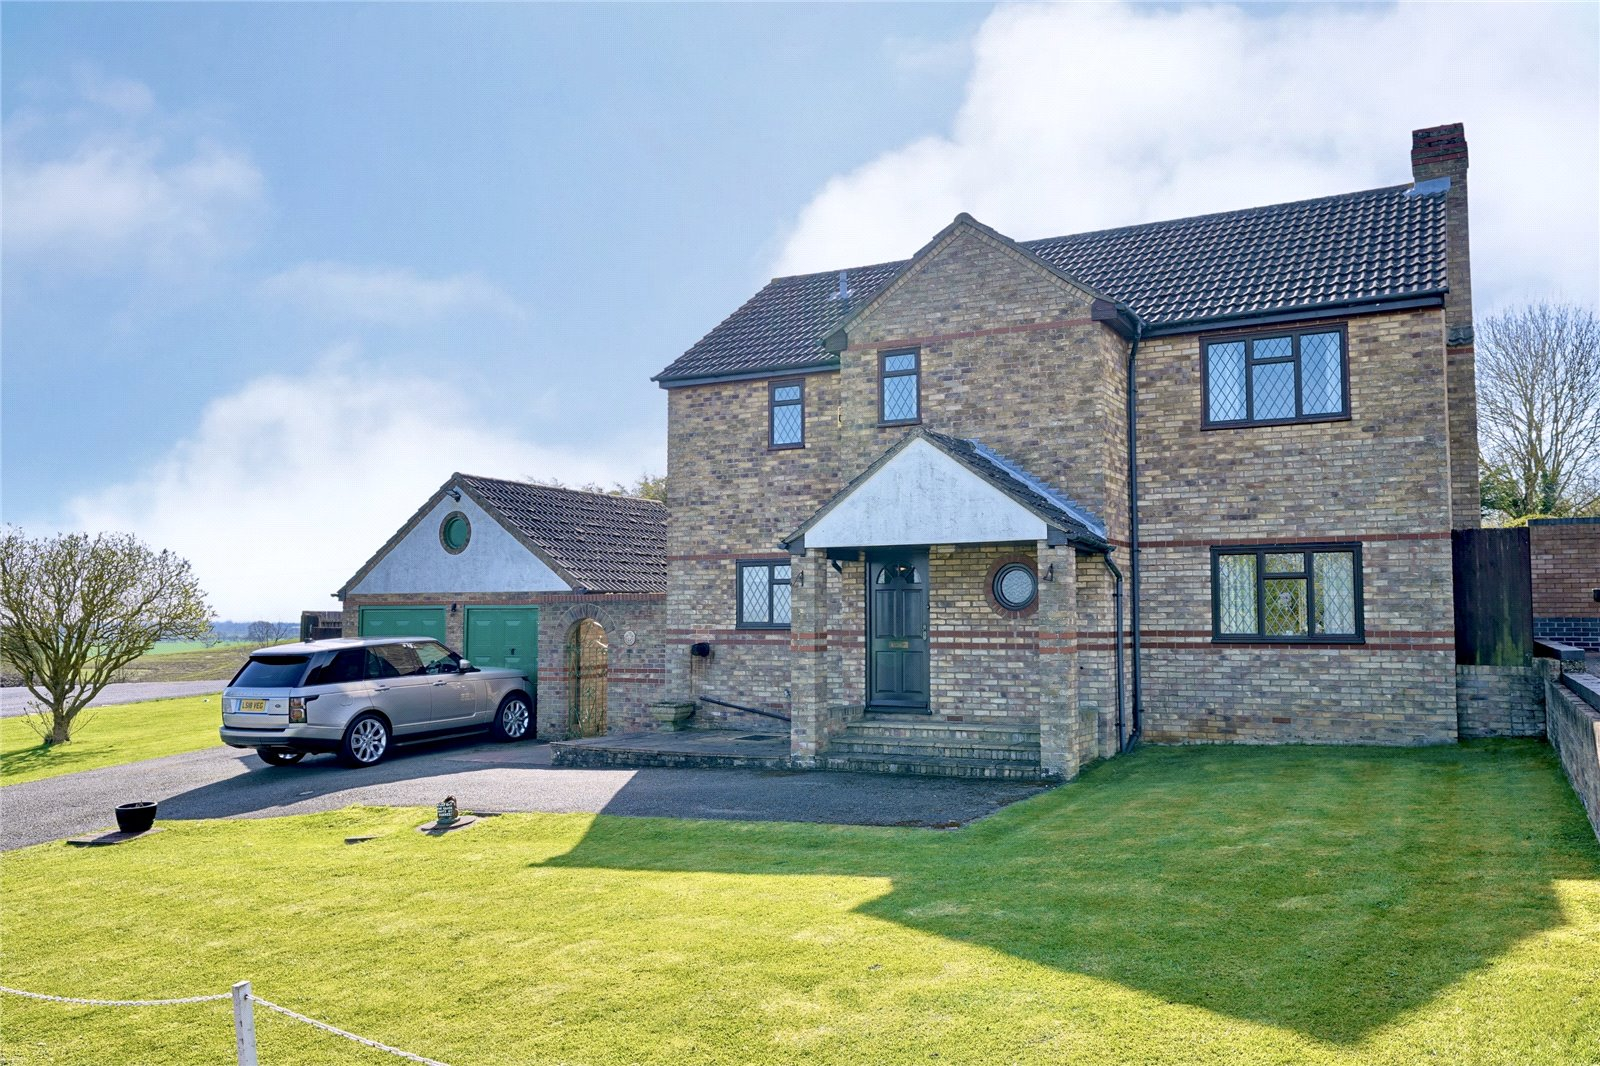 4 bed house for sale in Warboys, PE28 2TQ 0